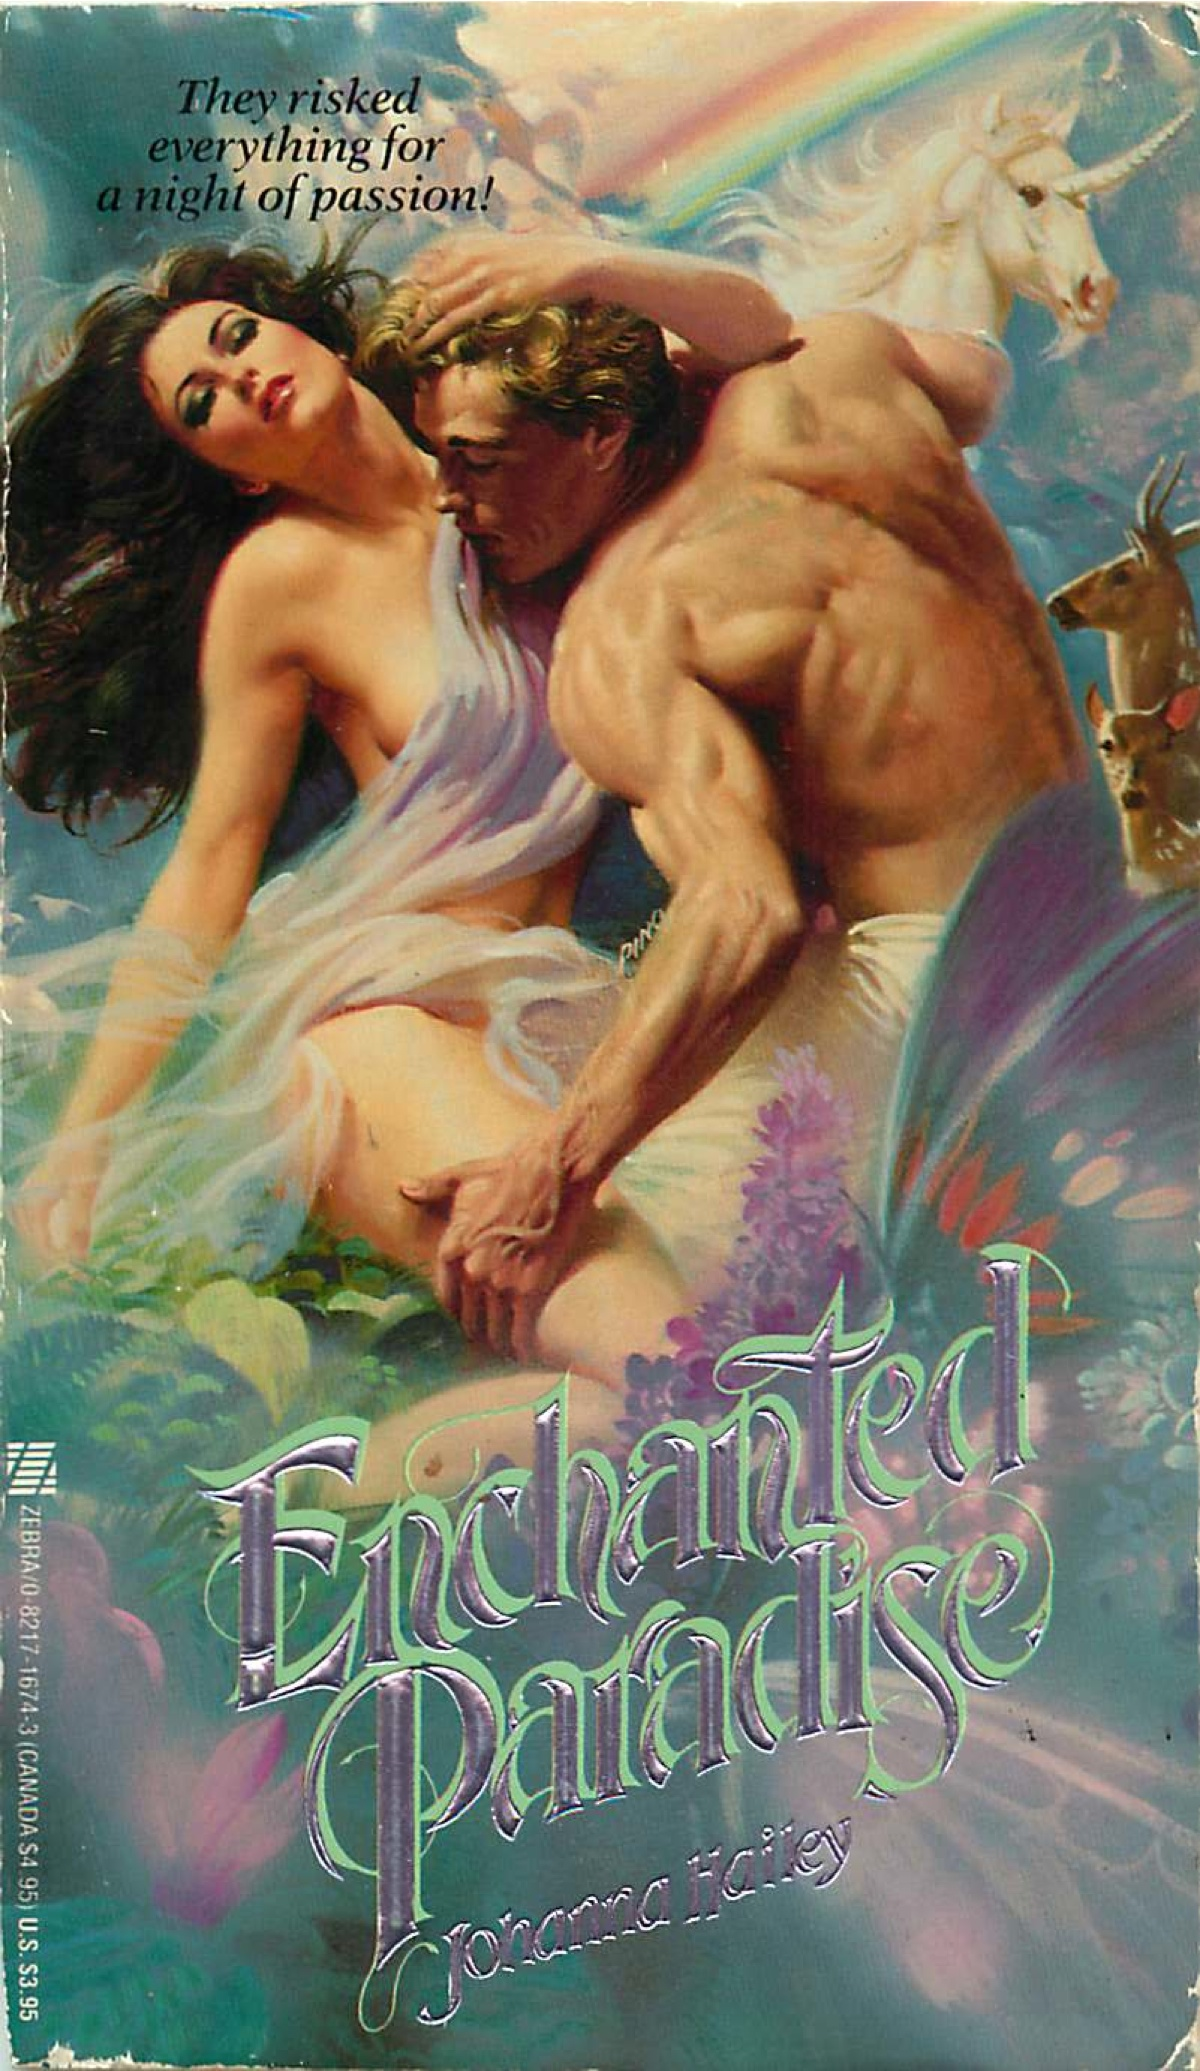 Enchanted Paradise - he's mouthing her neck, she's wearing a fluffy dryer sheet, and there are UNICORNS AND RAINBOWS